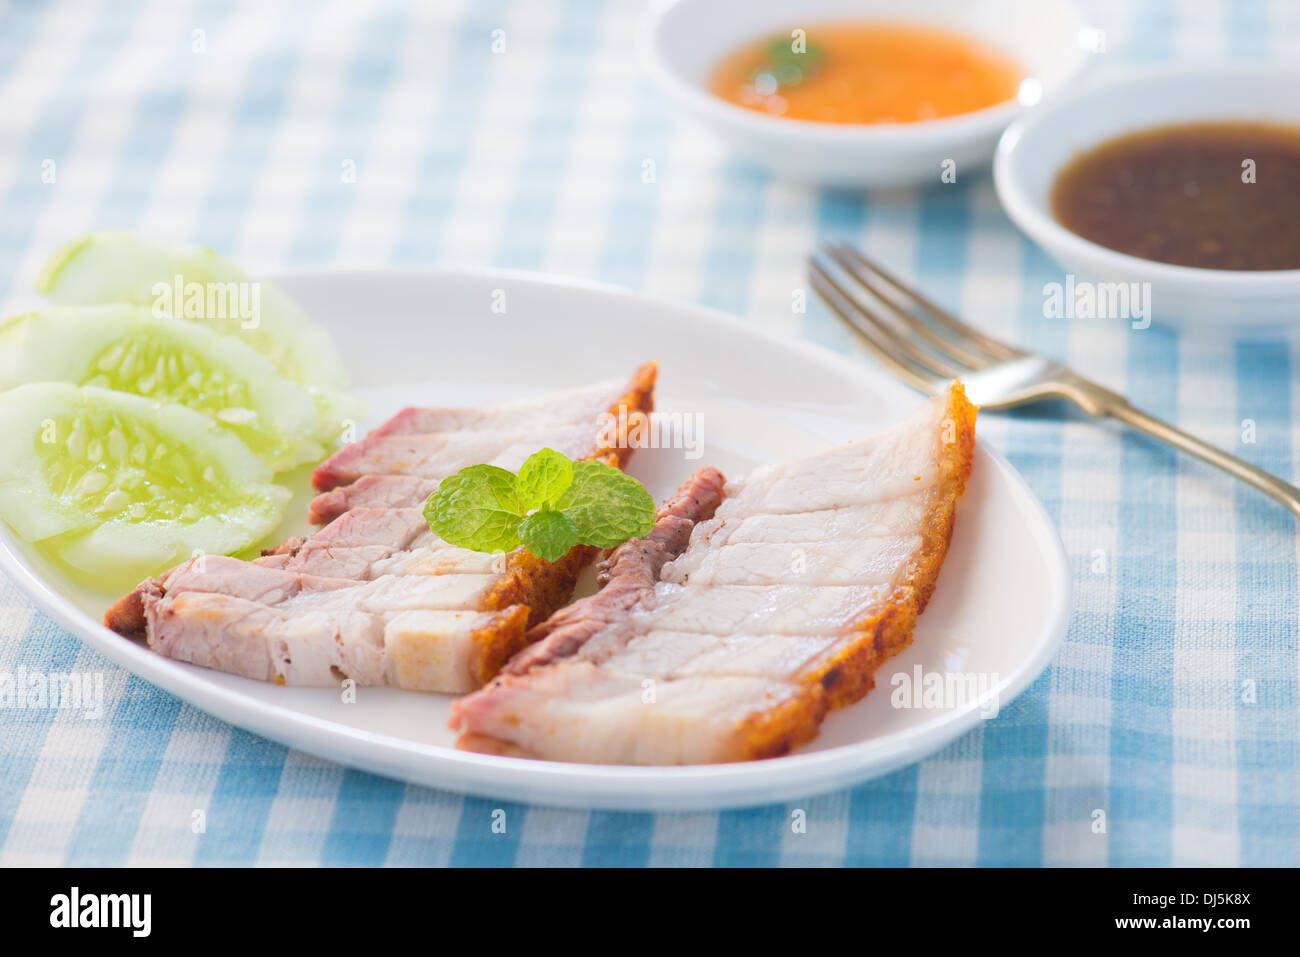 Siu Yuk - Chinese roasted pork served with soy and hoisin